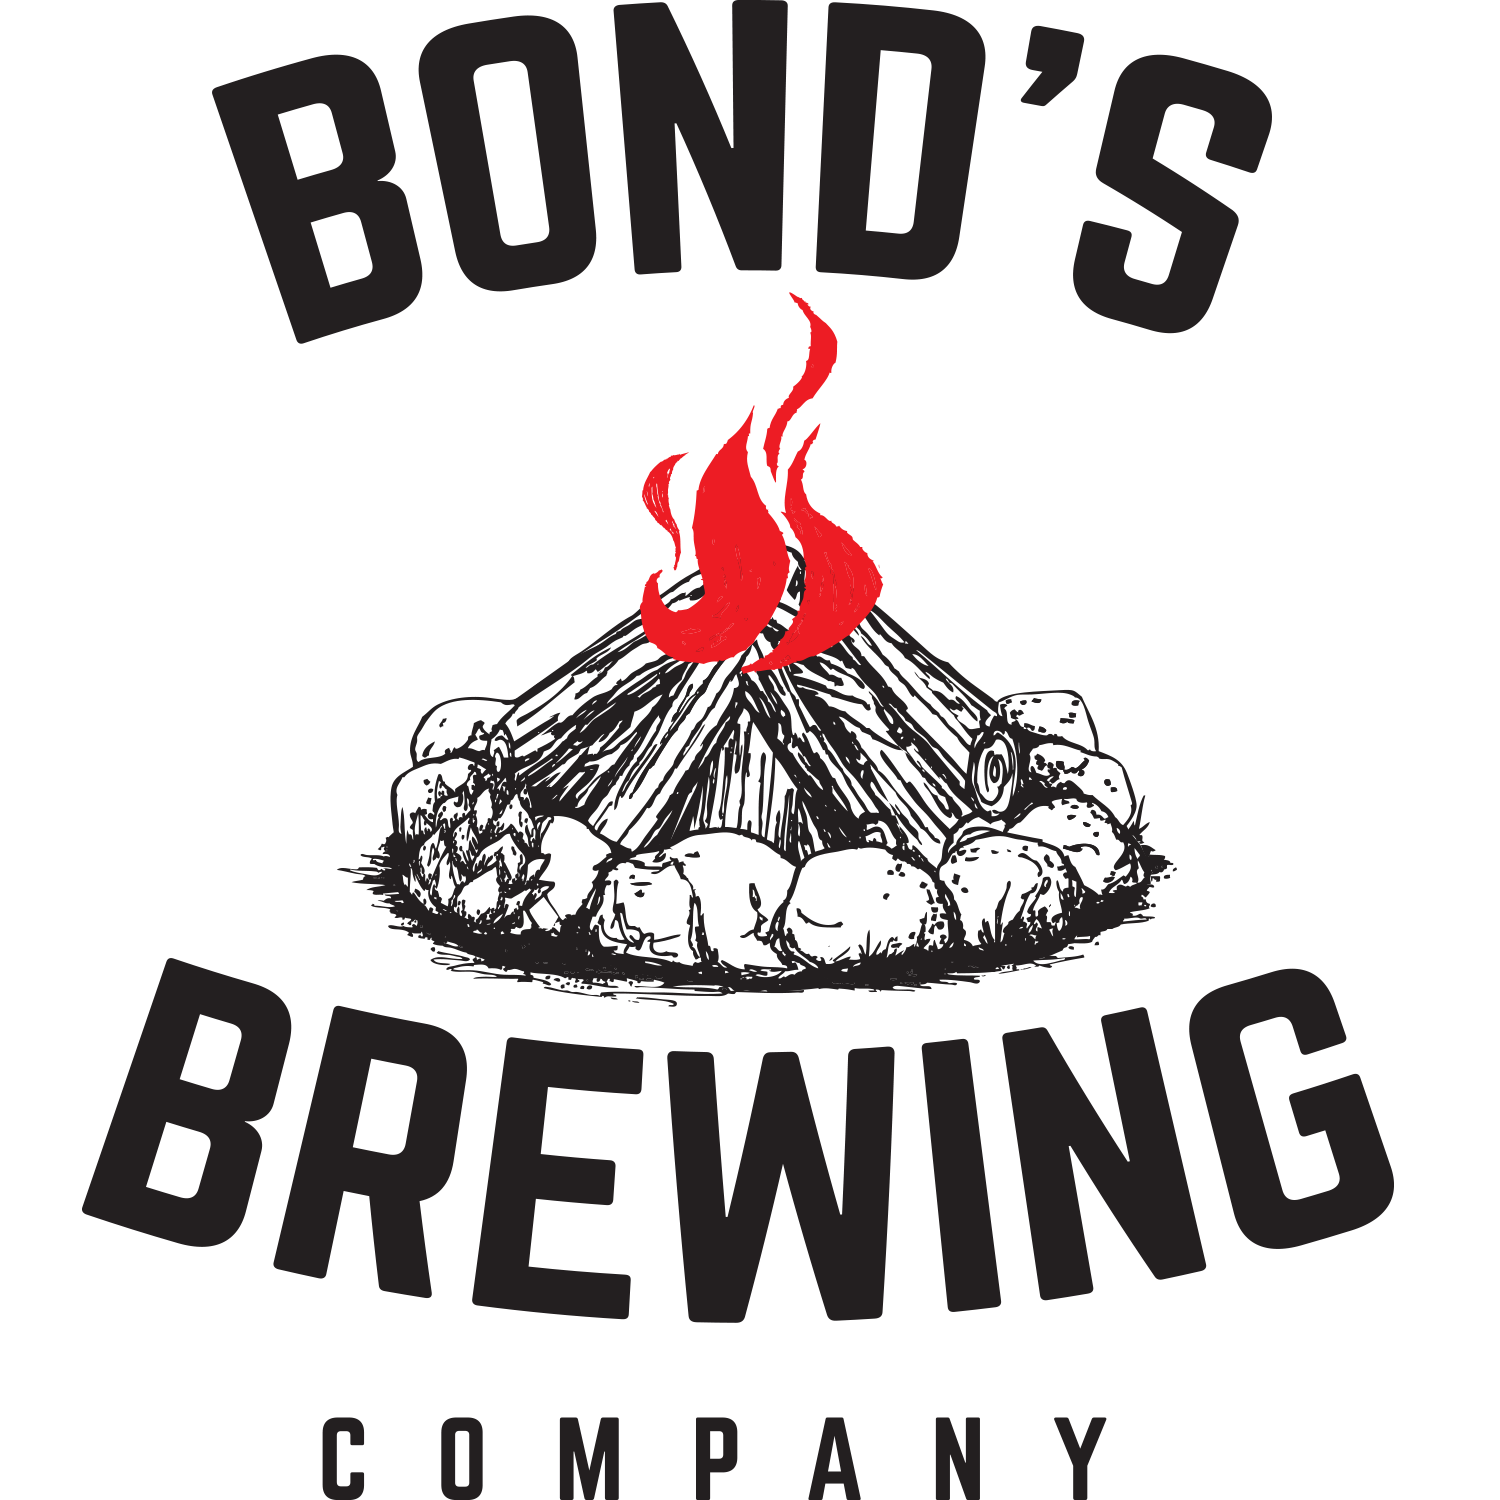 Bond's Brewing